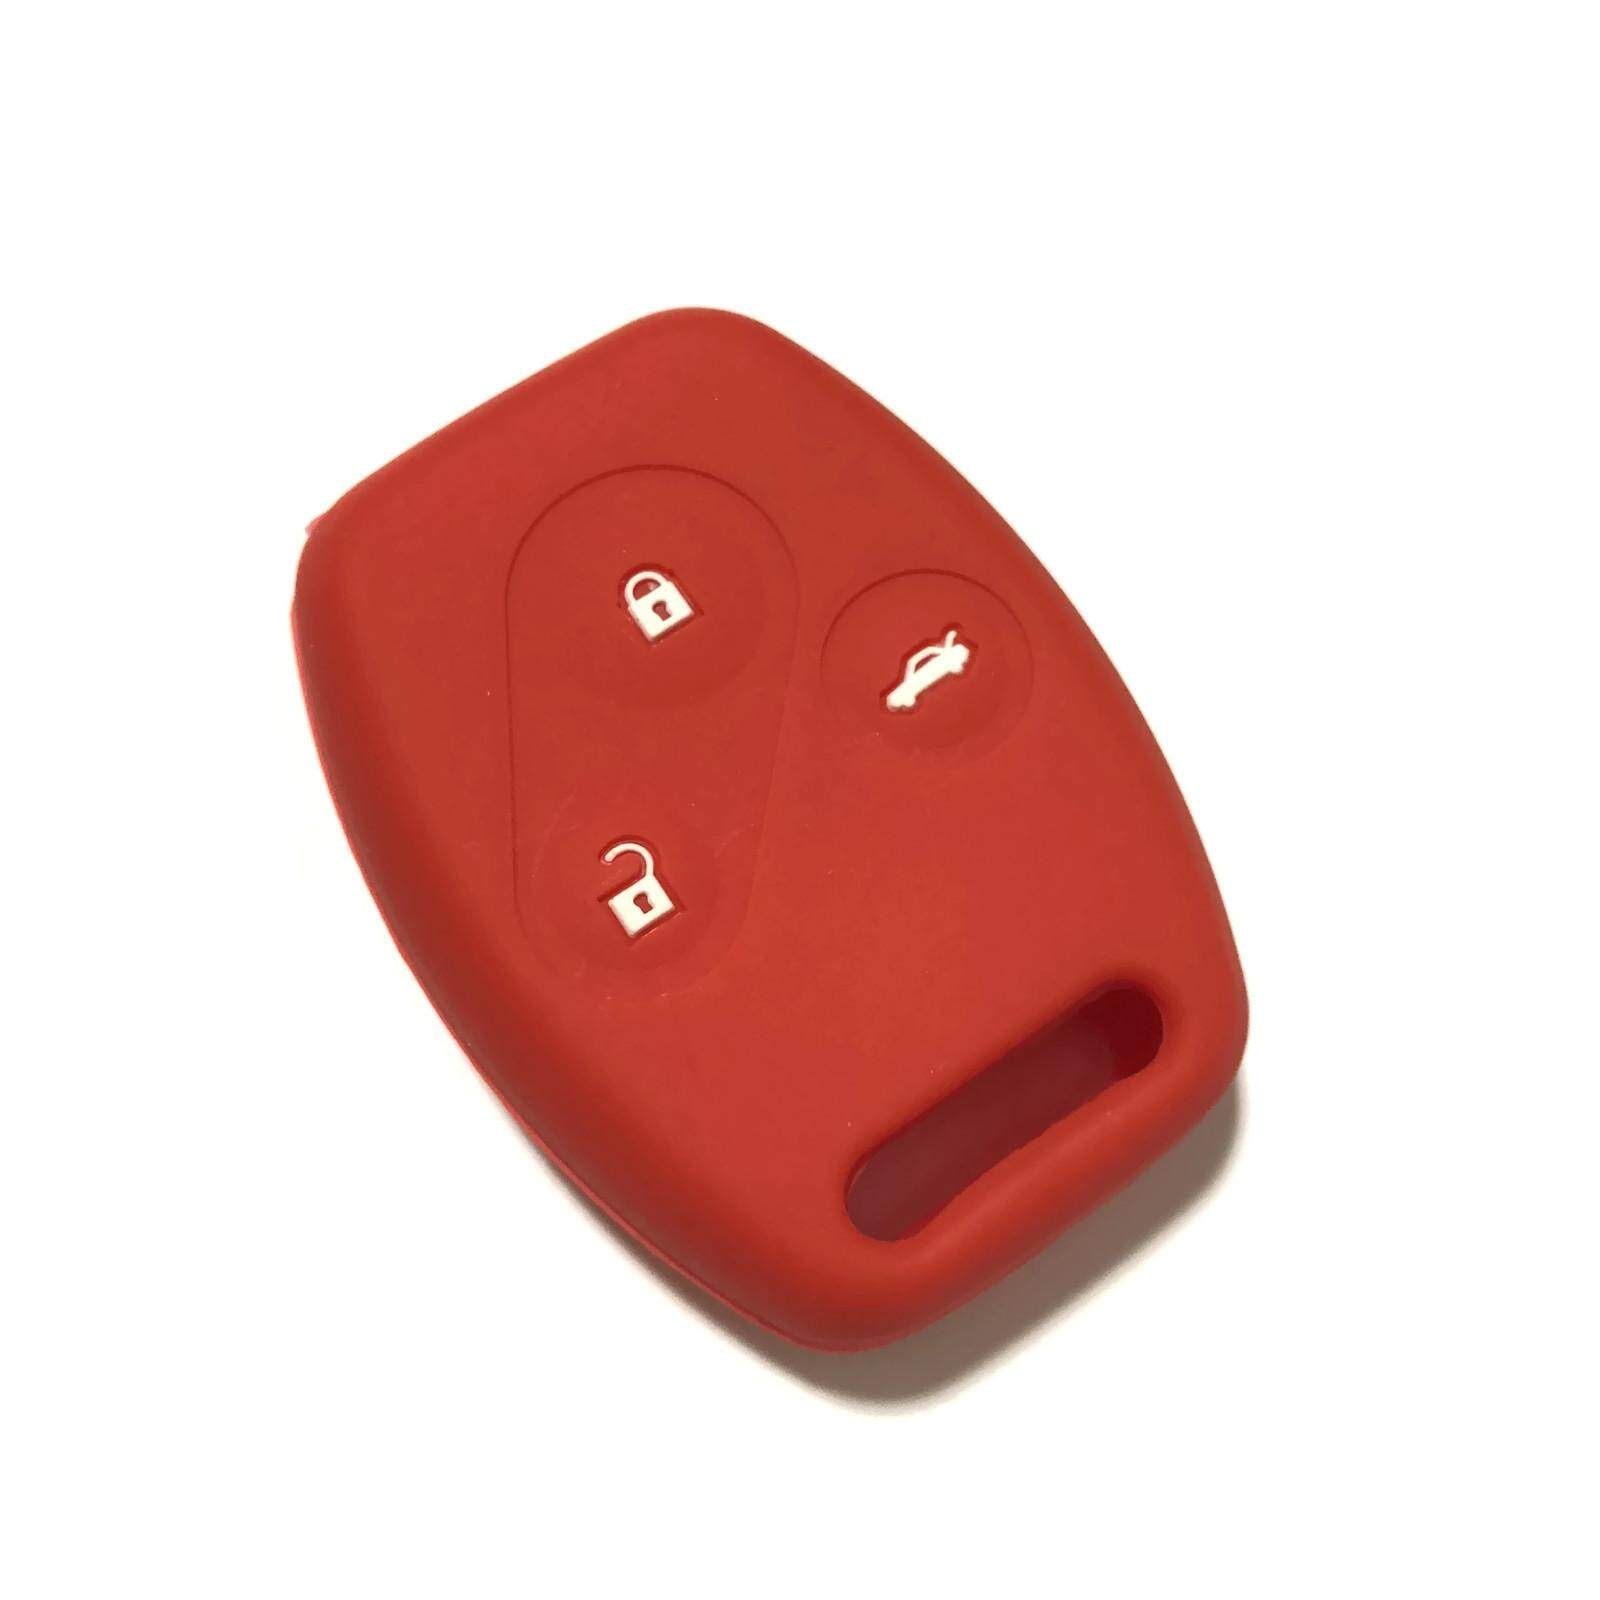 Silicone Car Key Cover Case Compatible with Honda Accord CRV 2002-2012 (Red)